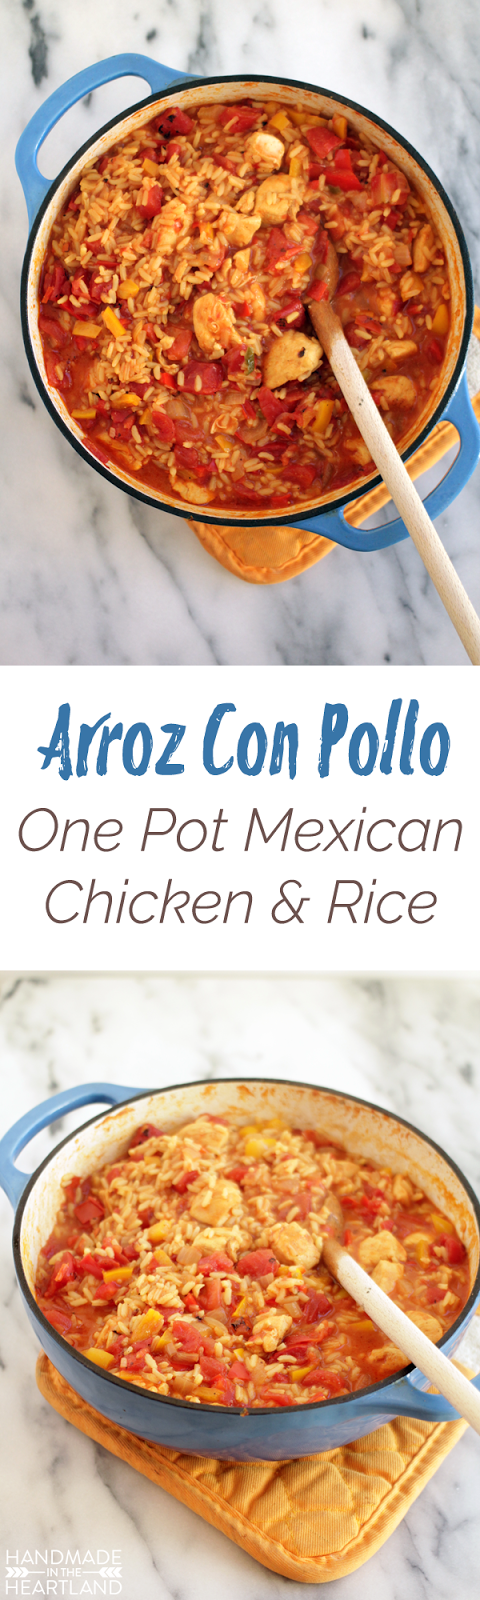 easy one pot chicken and rice recipe